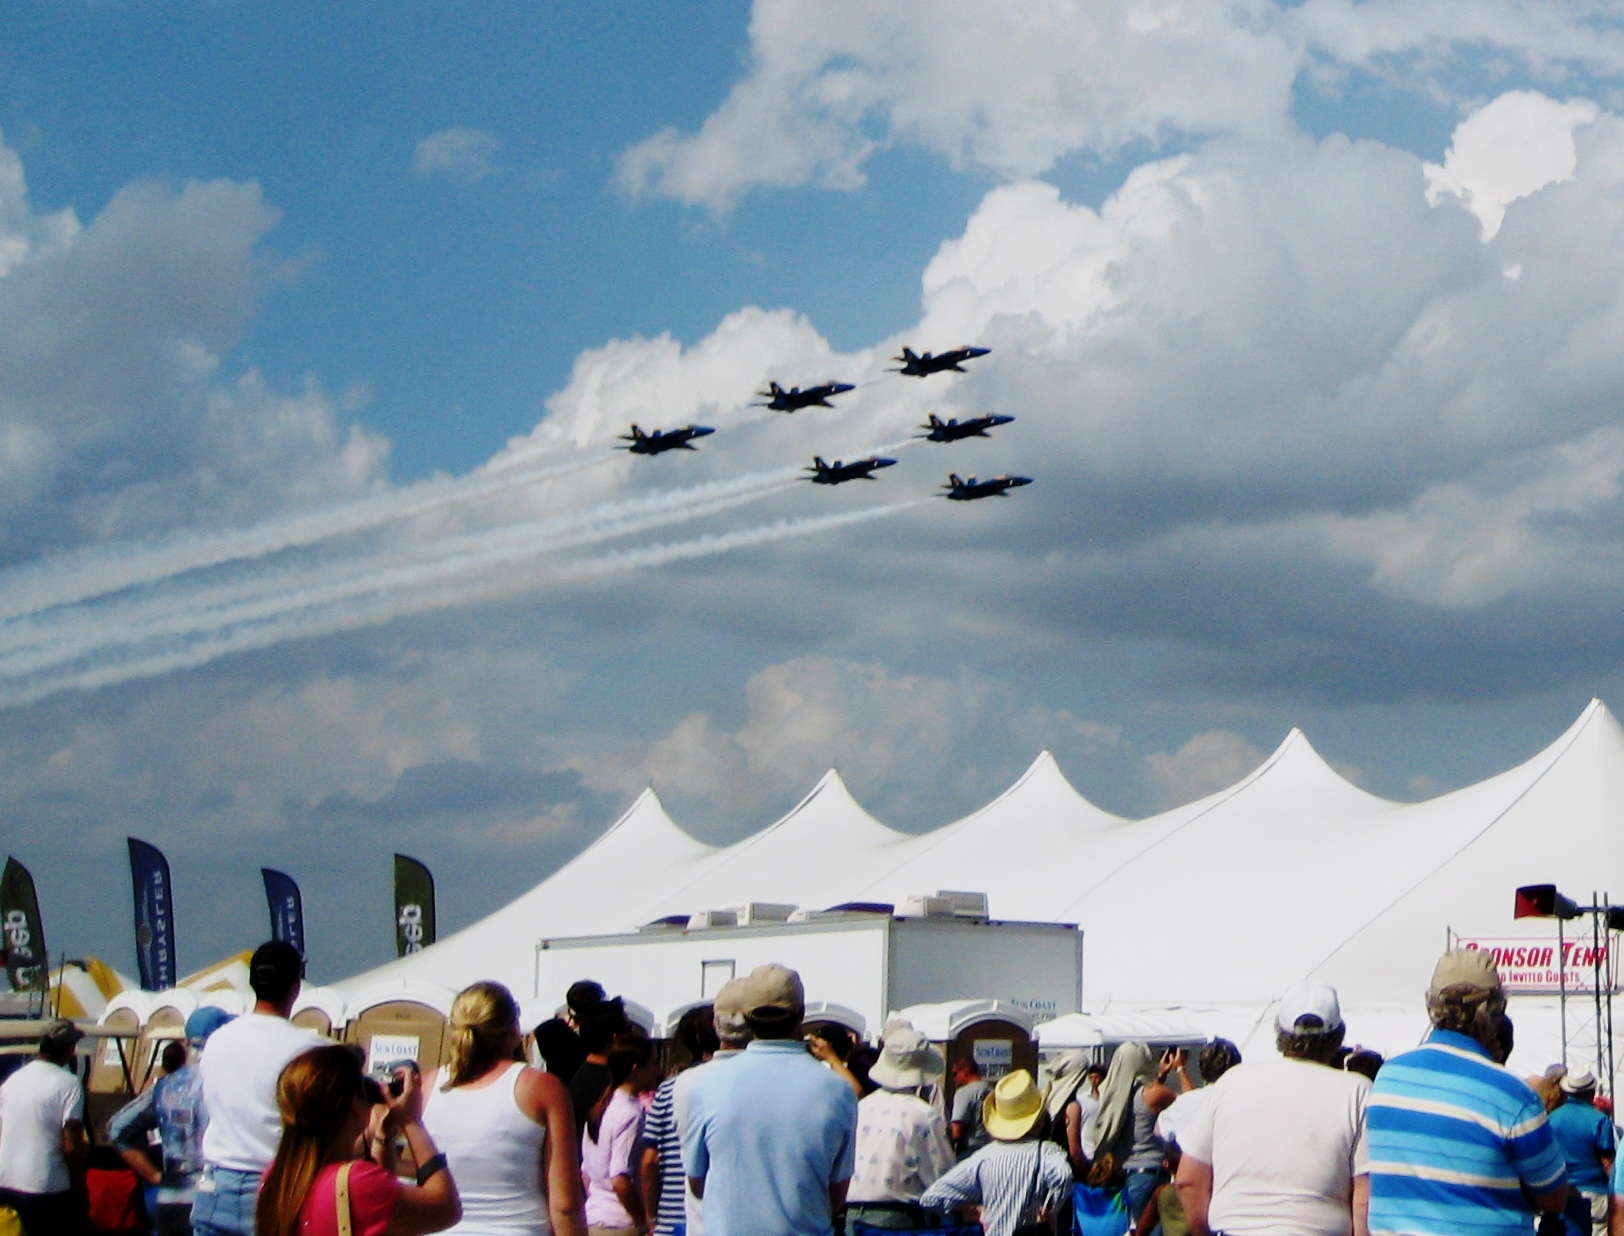 U.S. Navy Blue Angels Last Performed at the Florida International Air Show in 2009